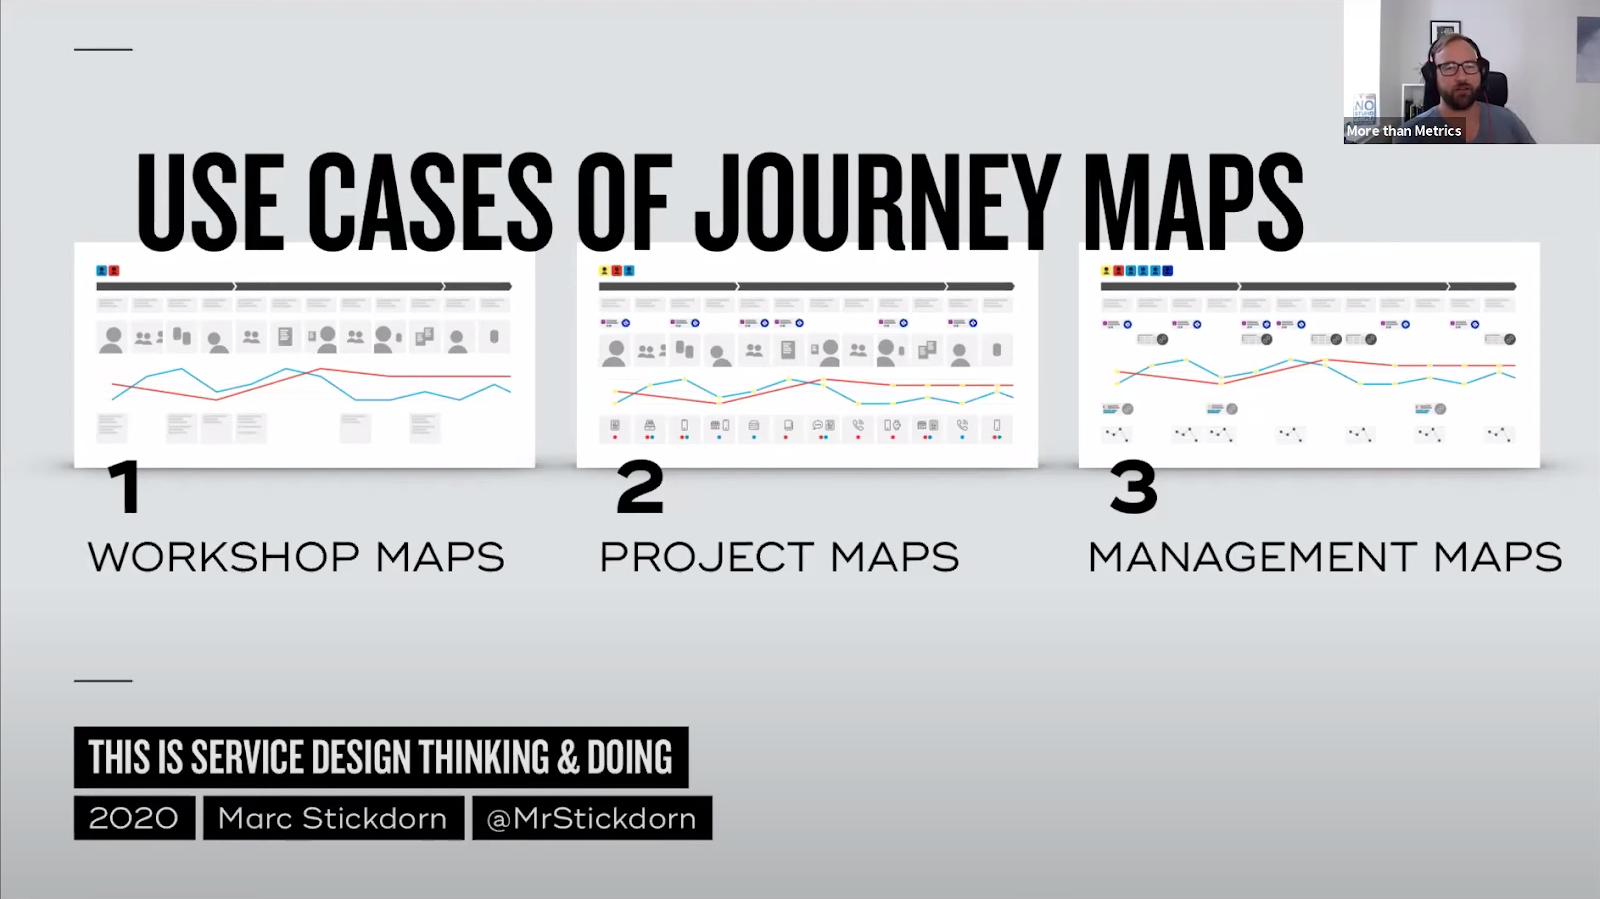 grey background with 3 visualizations of journey maps: 1. workshop maps, 2. project maps, 3. management maps